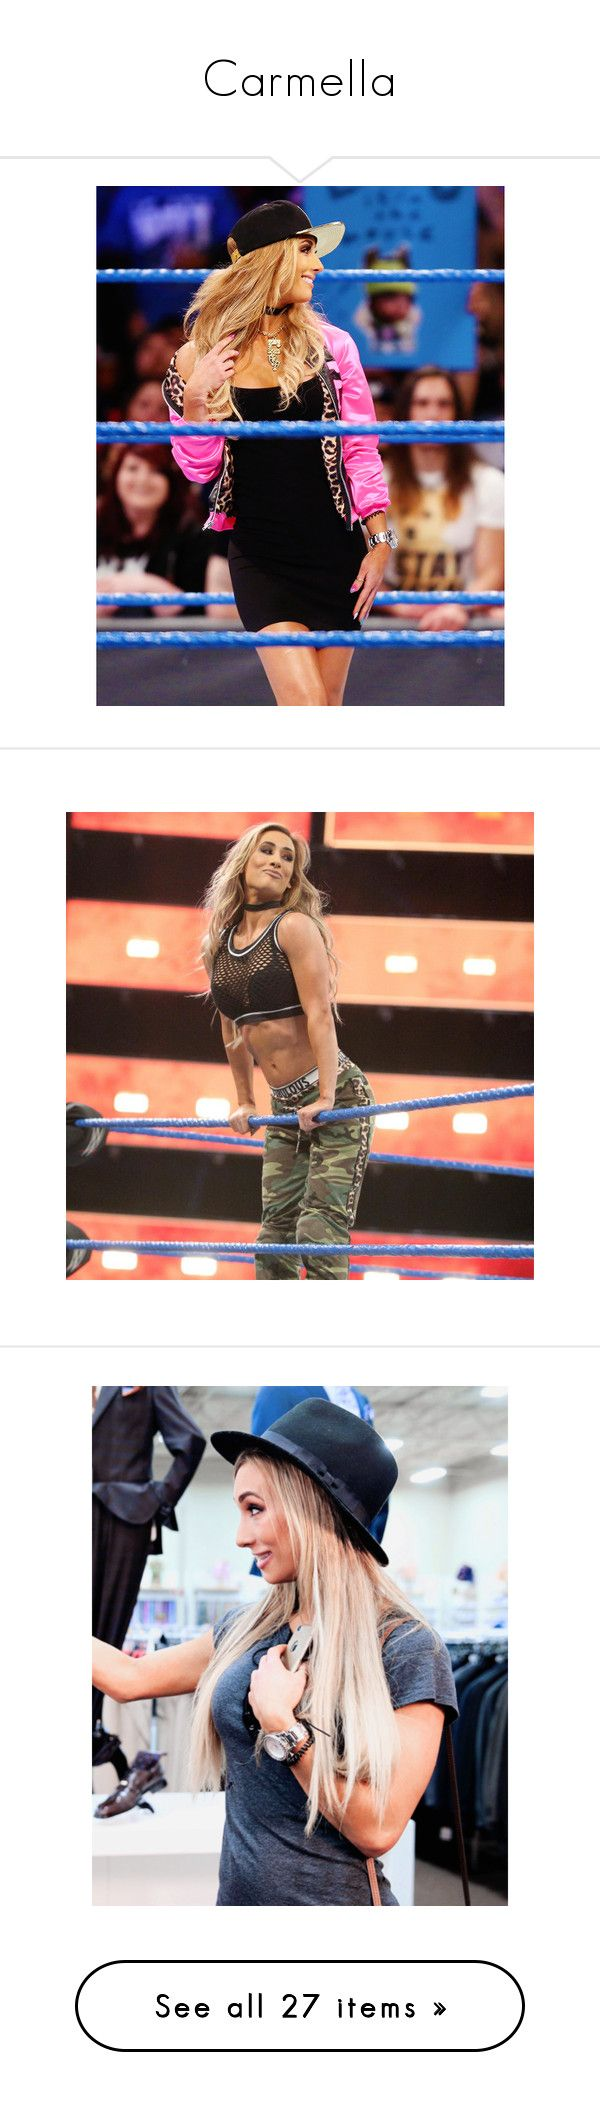 """""""Carmella"""" by amysykes-697 ❤ liked on Polyvore featuring wwe, carmella and nxt guys and girls"""